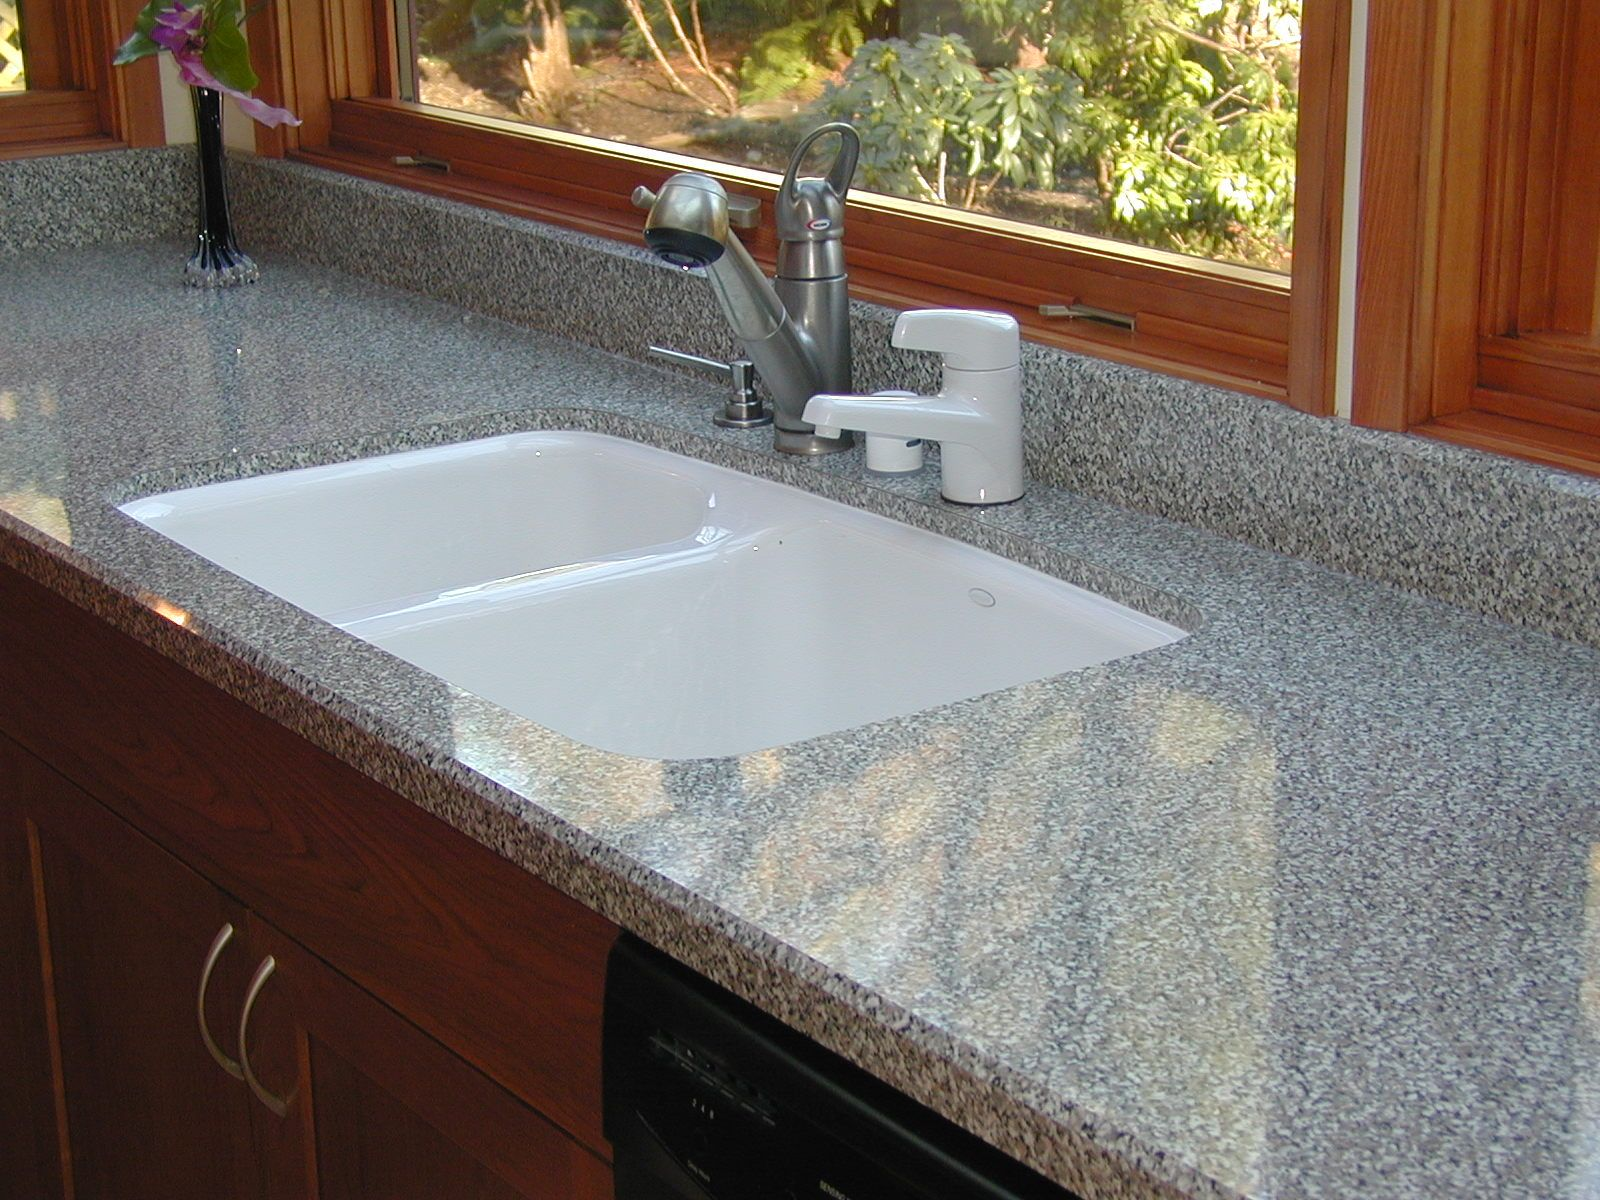 Kitchen Countertops Design Pinterest Laminate Countertops For Kitchens Countertop Design And